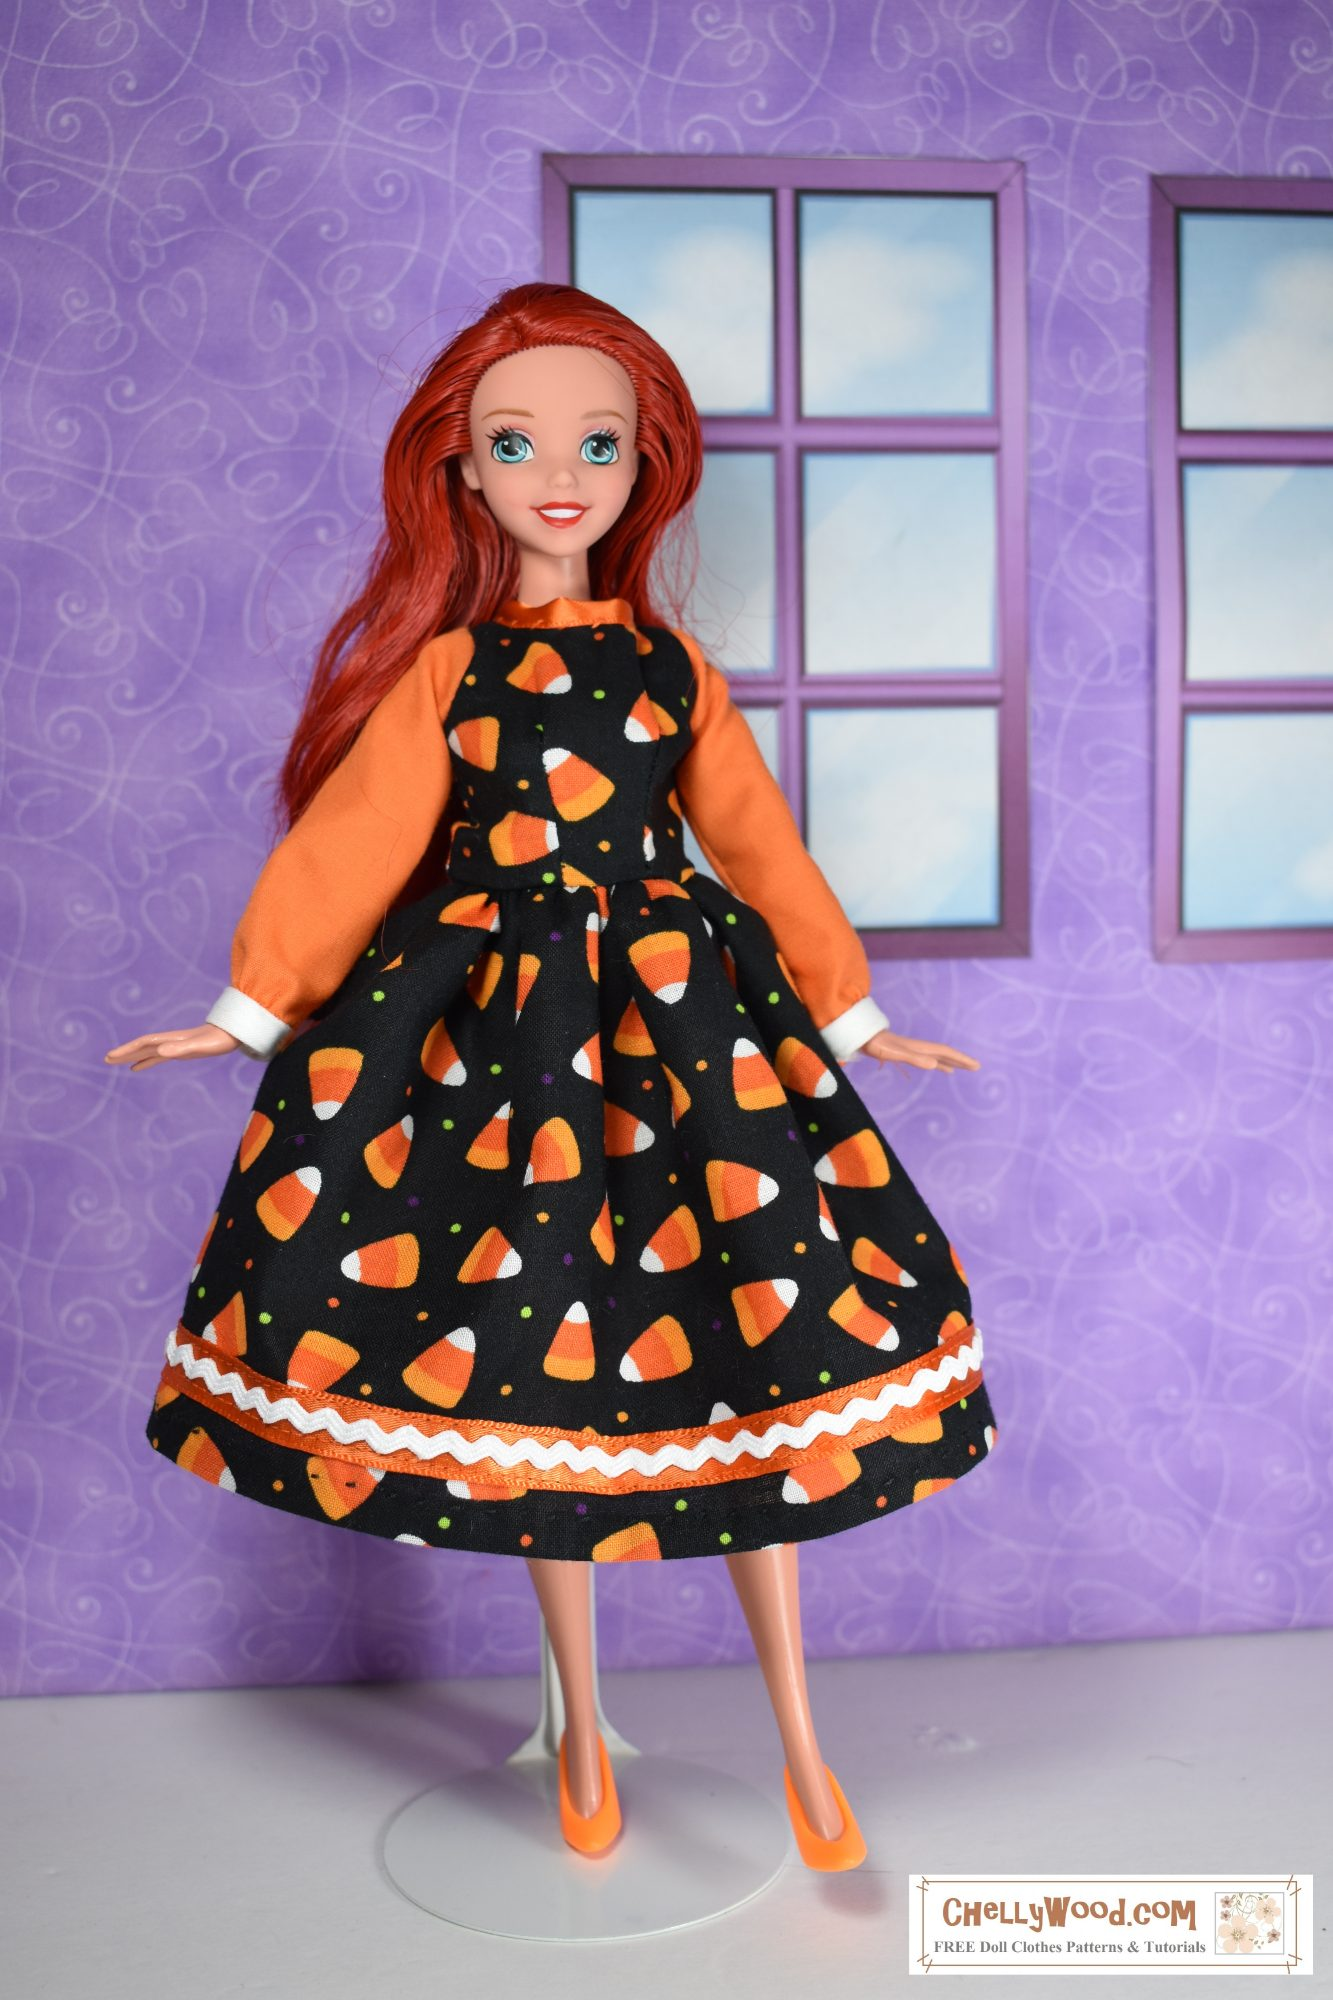 The image shows an Ariel doll wearing a long-sleeved dress with cuffs and rickrack trim. The cotton fabric of the dress is decorated with candy corn print.